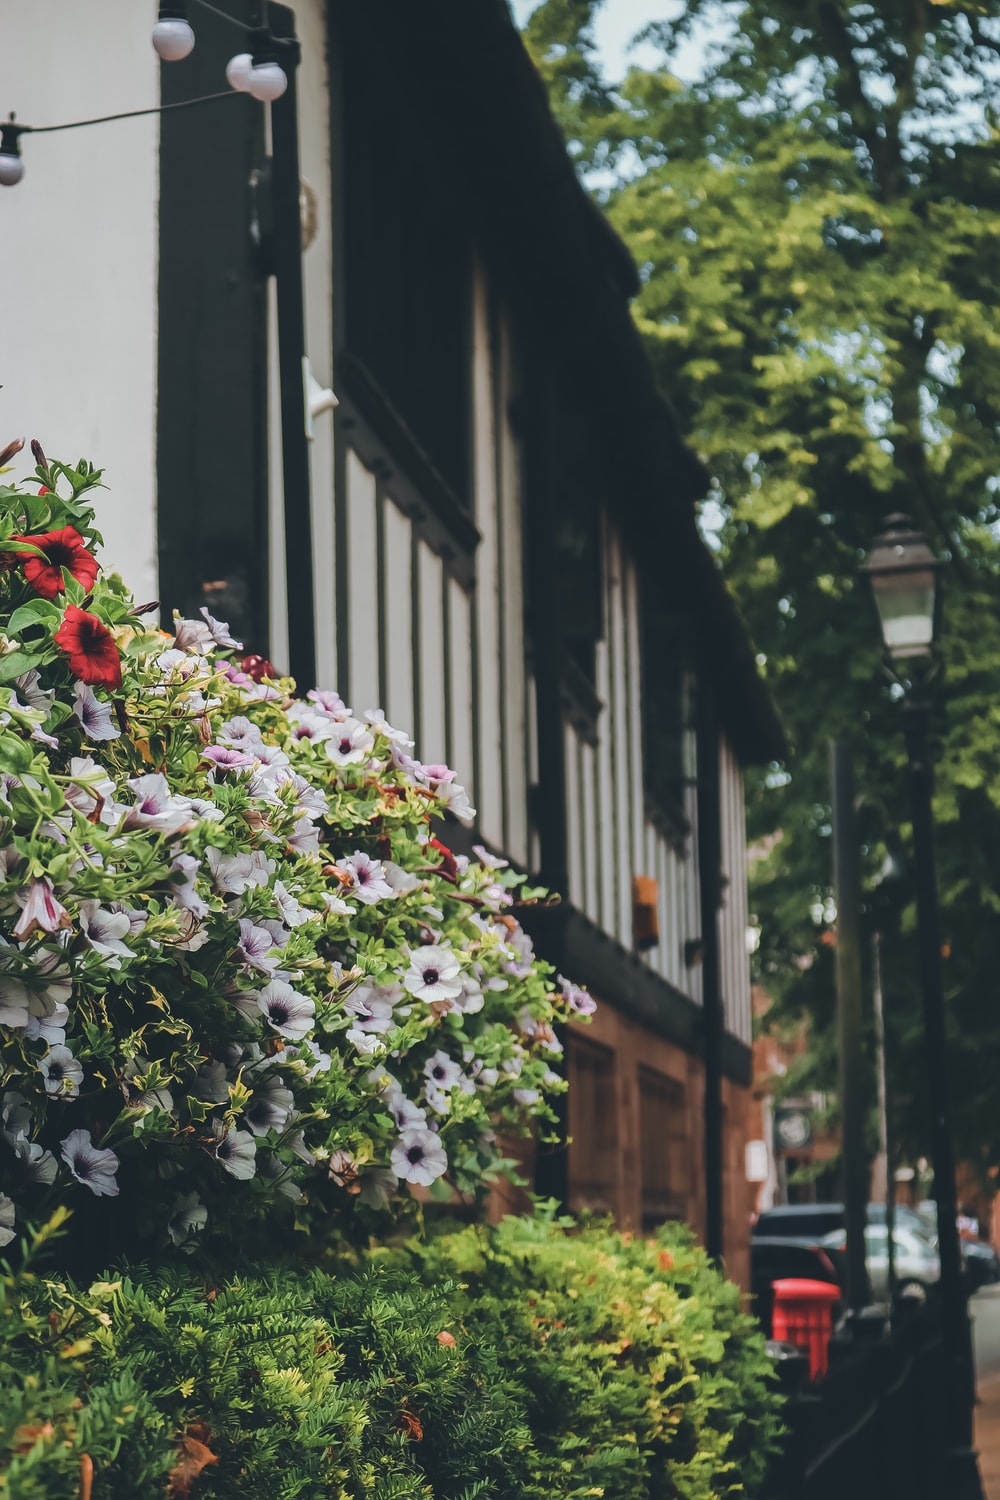 white flowers near building during daytime